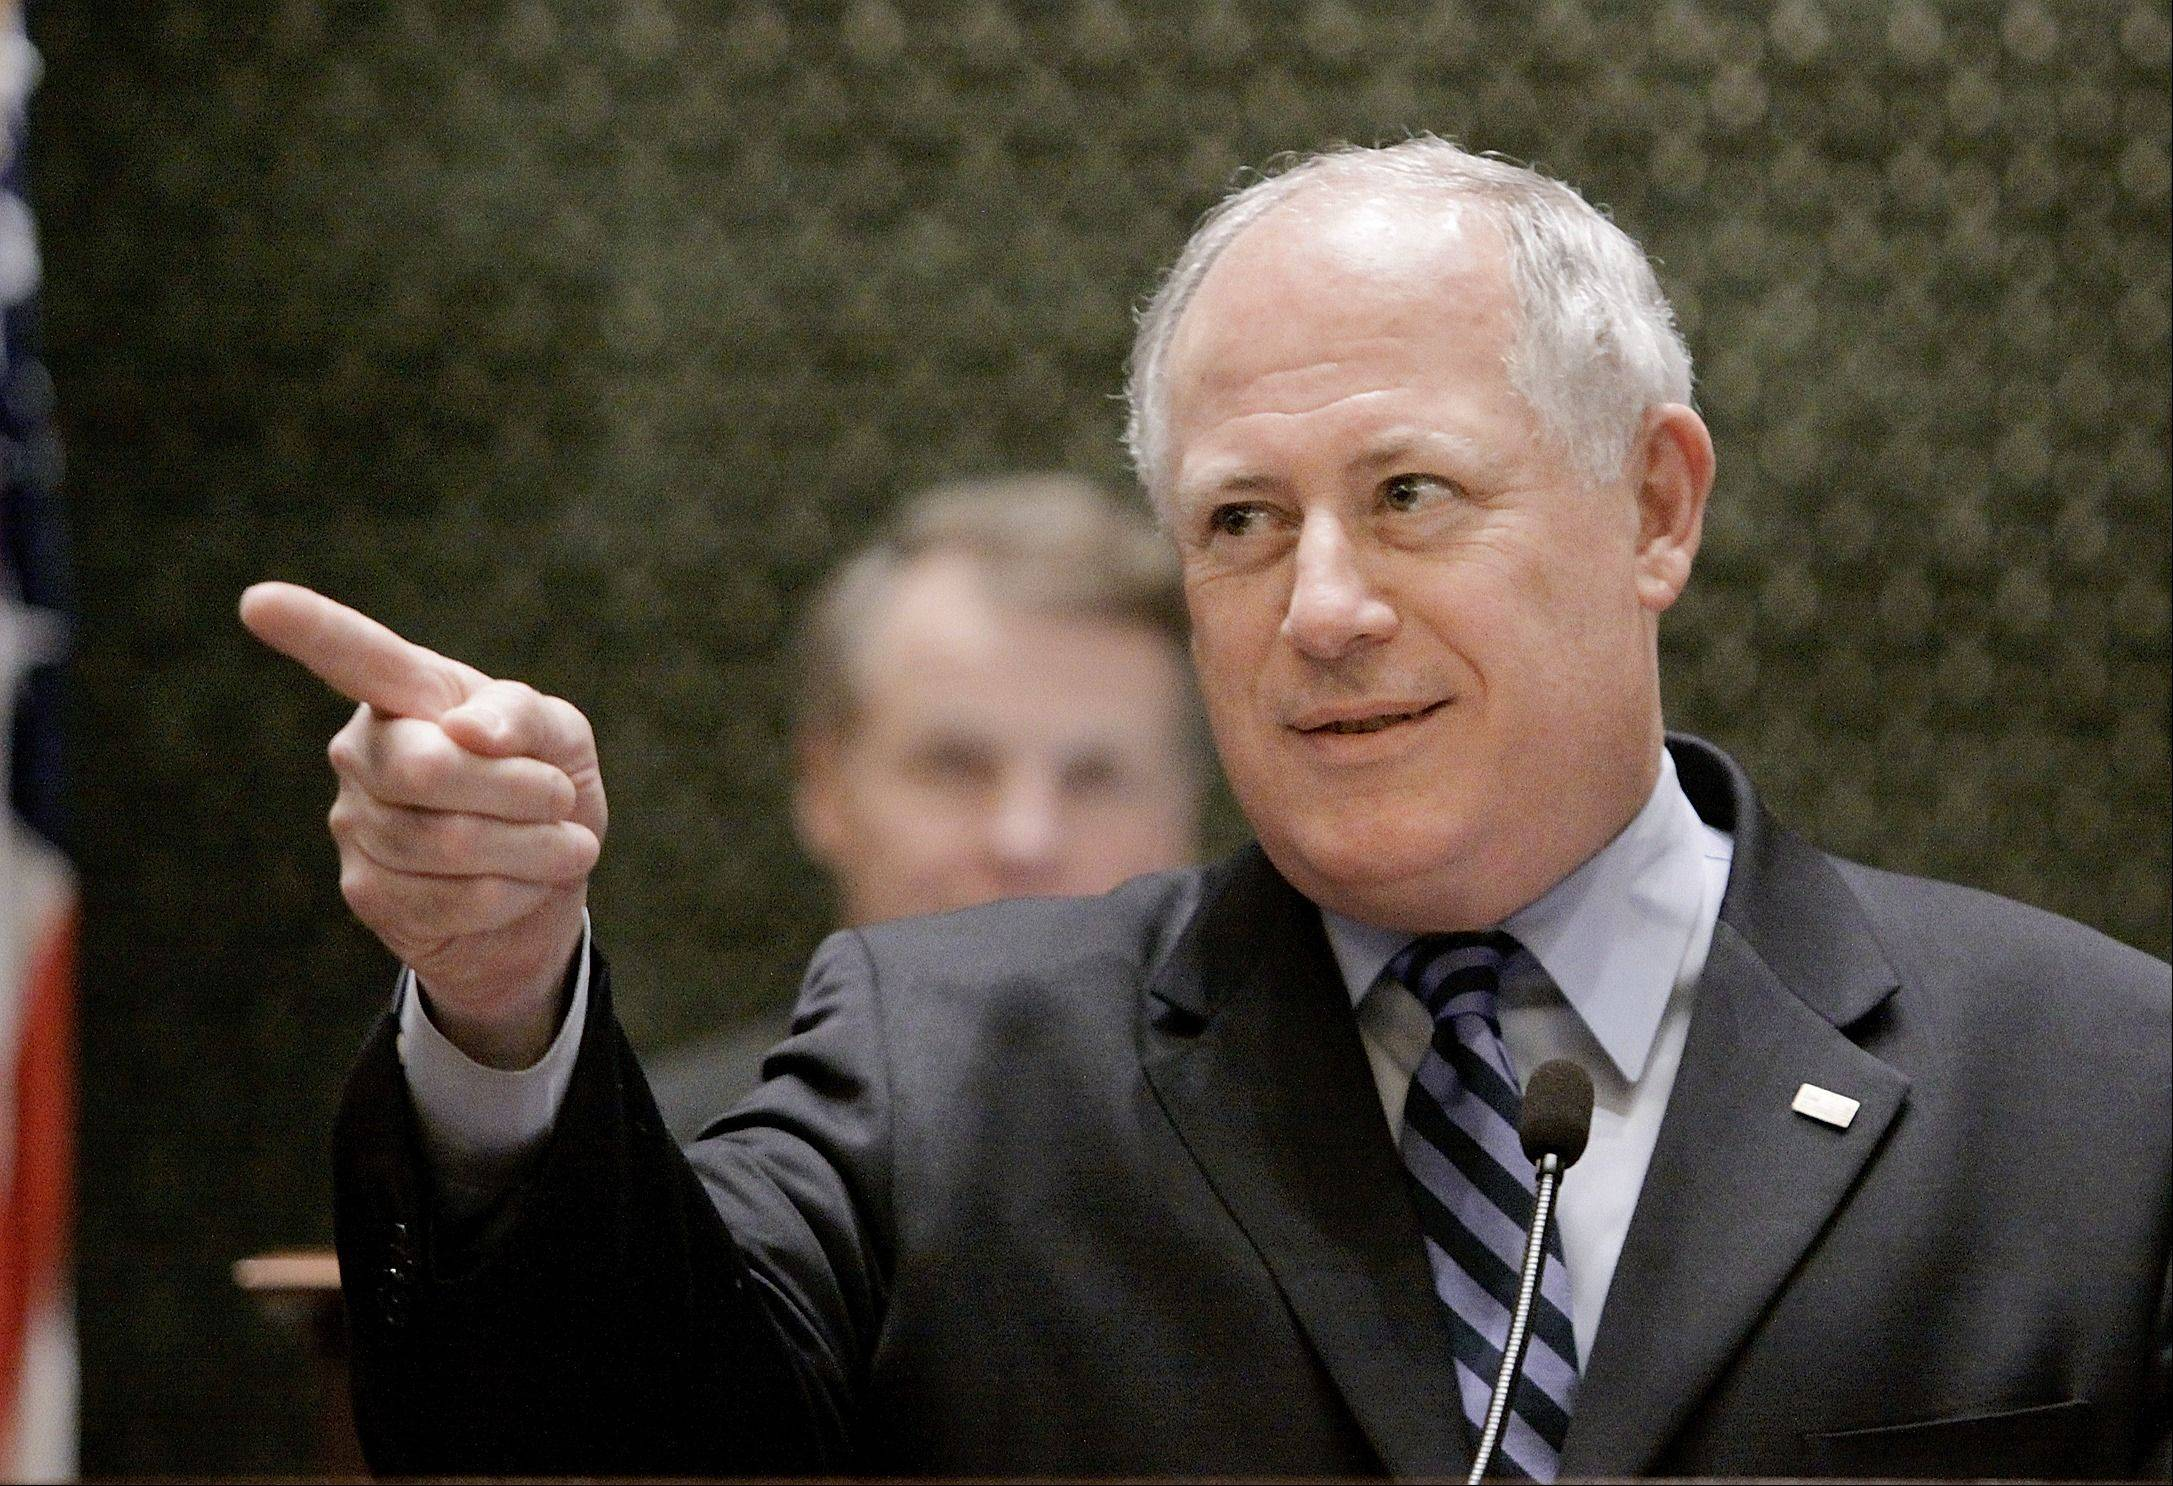 Illinois Gov. Pat Quinn delivers his State of the Budget Address to a joint session of the General Assembly on the House floor at the Illinois State Capitol in Springfield, Ill., Wednesday, March 18, 2009. (AP Photo/Seth Perlman)